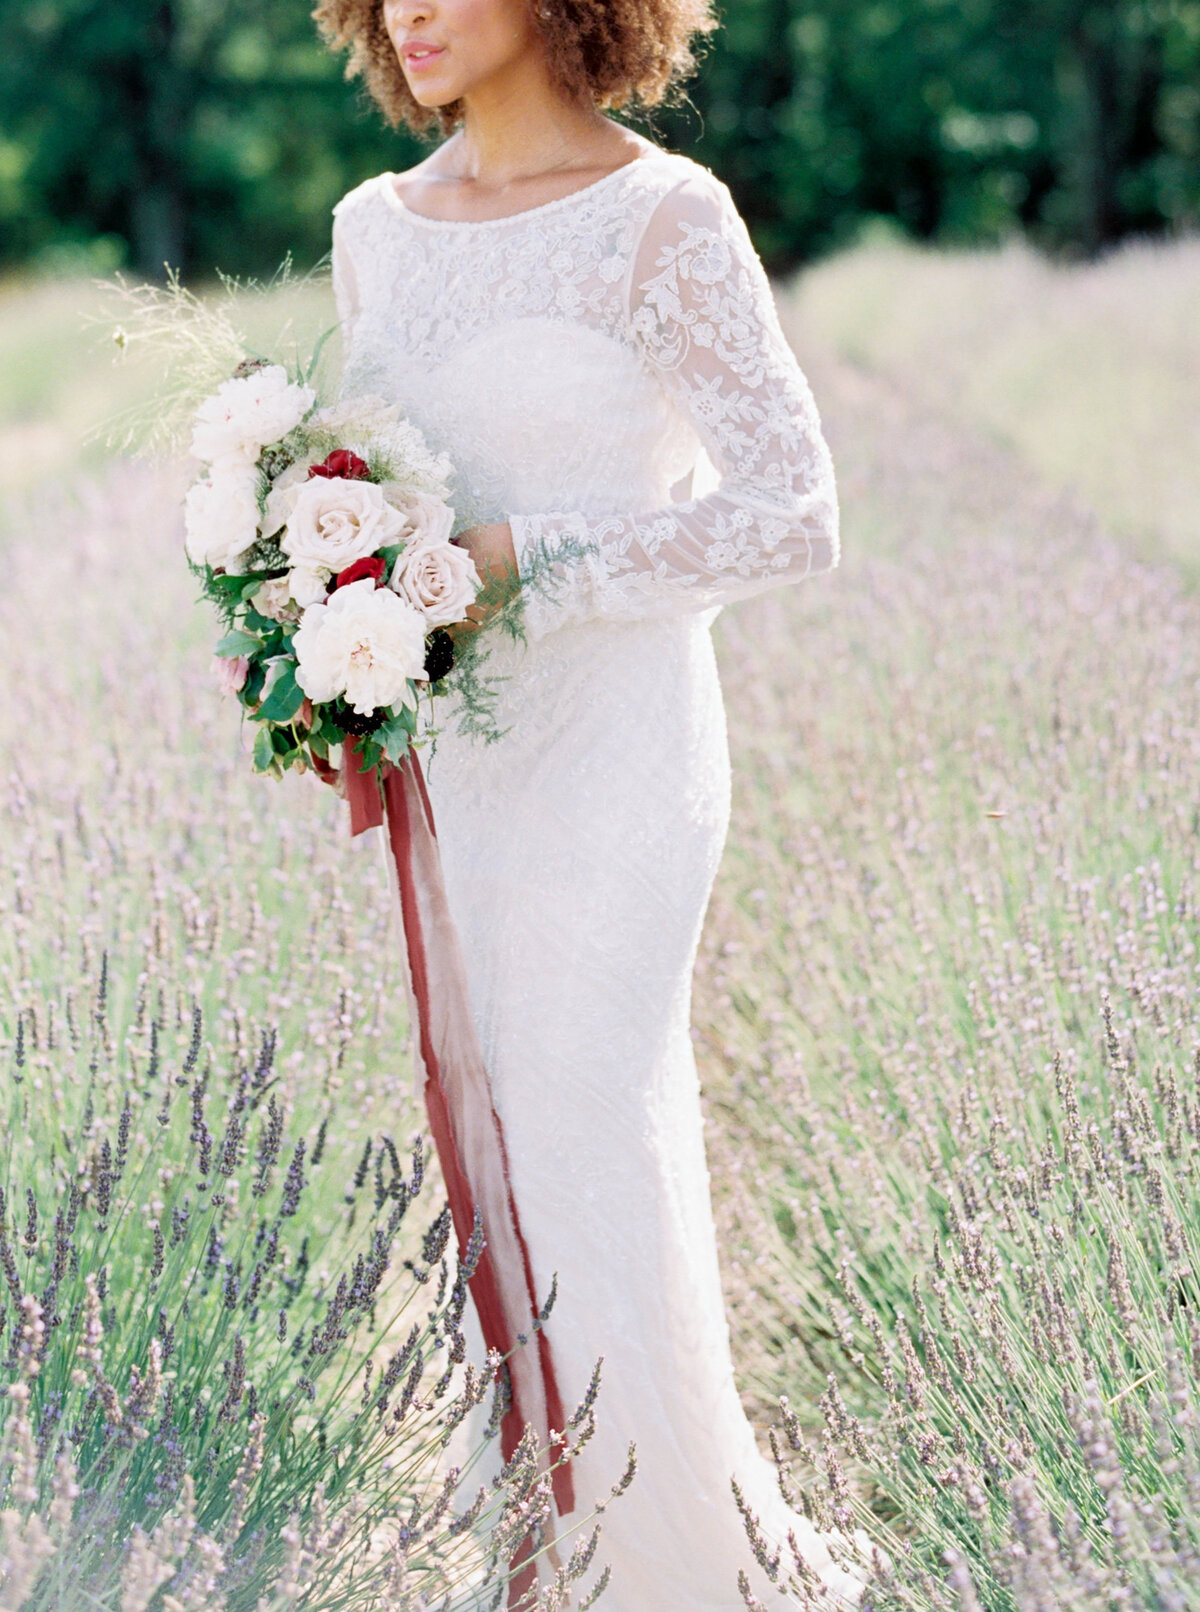 Allora & Ivy Event Co |  Dallas Wedding Planners & Event Designers | Lavender Fields Inspiration at The White Sparrow